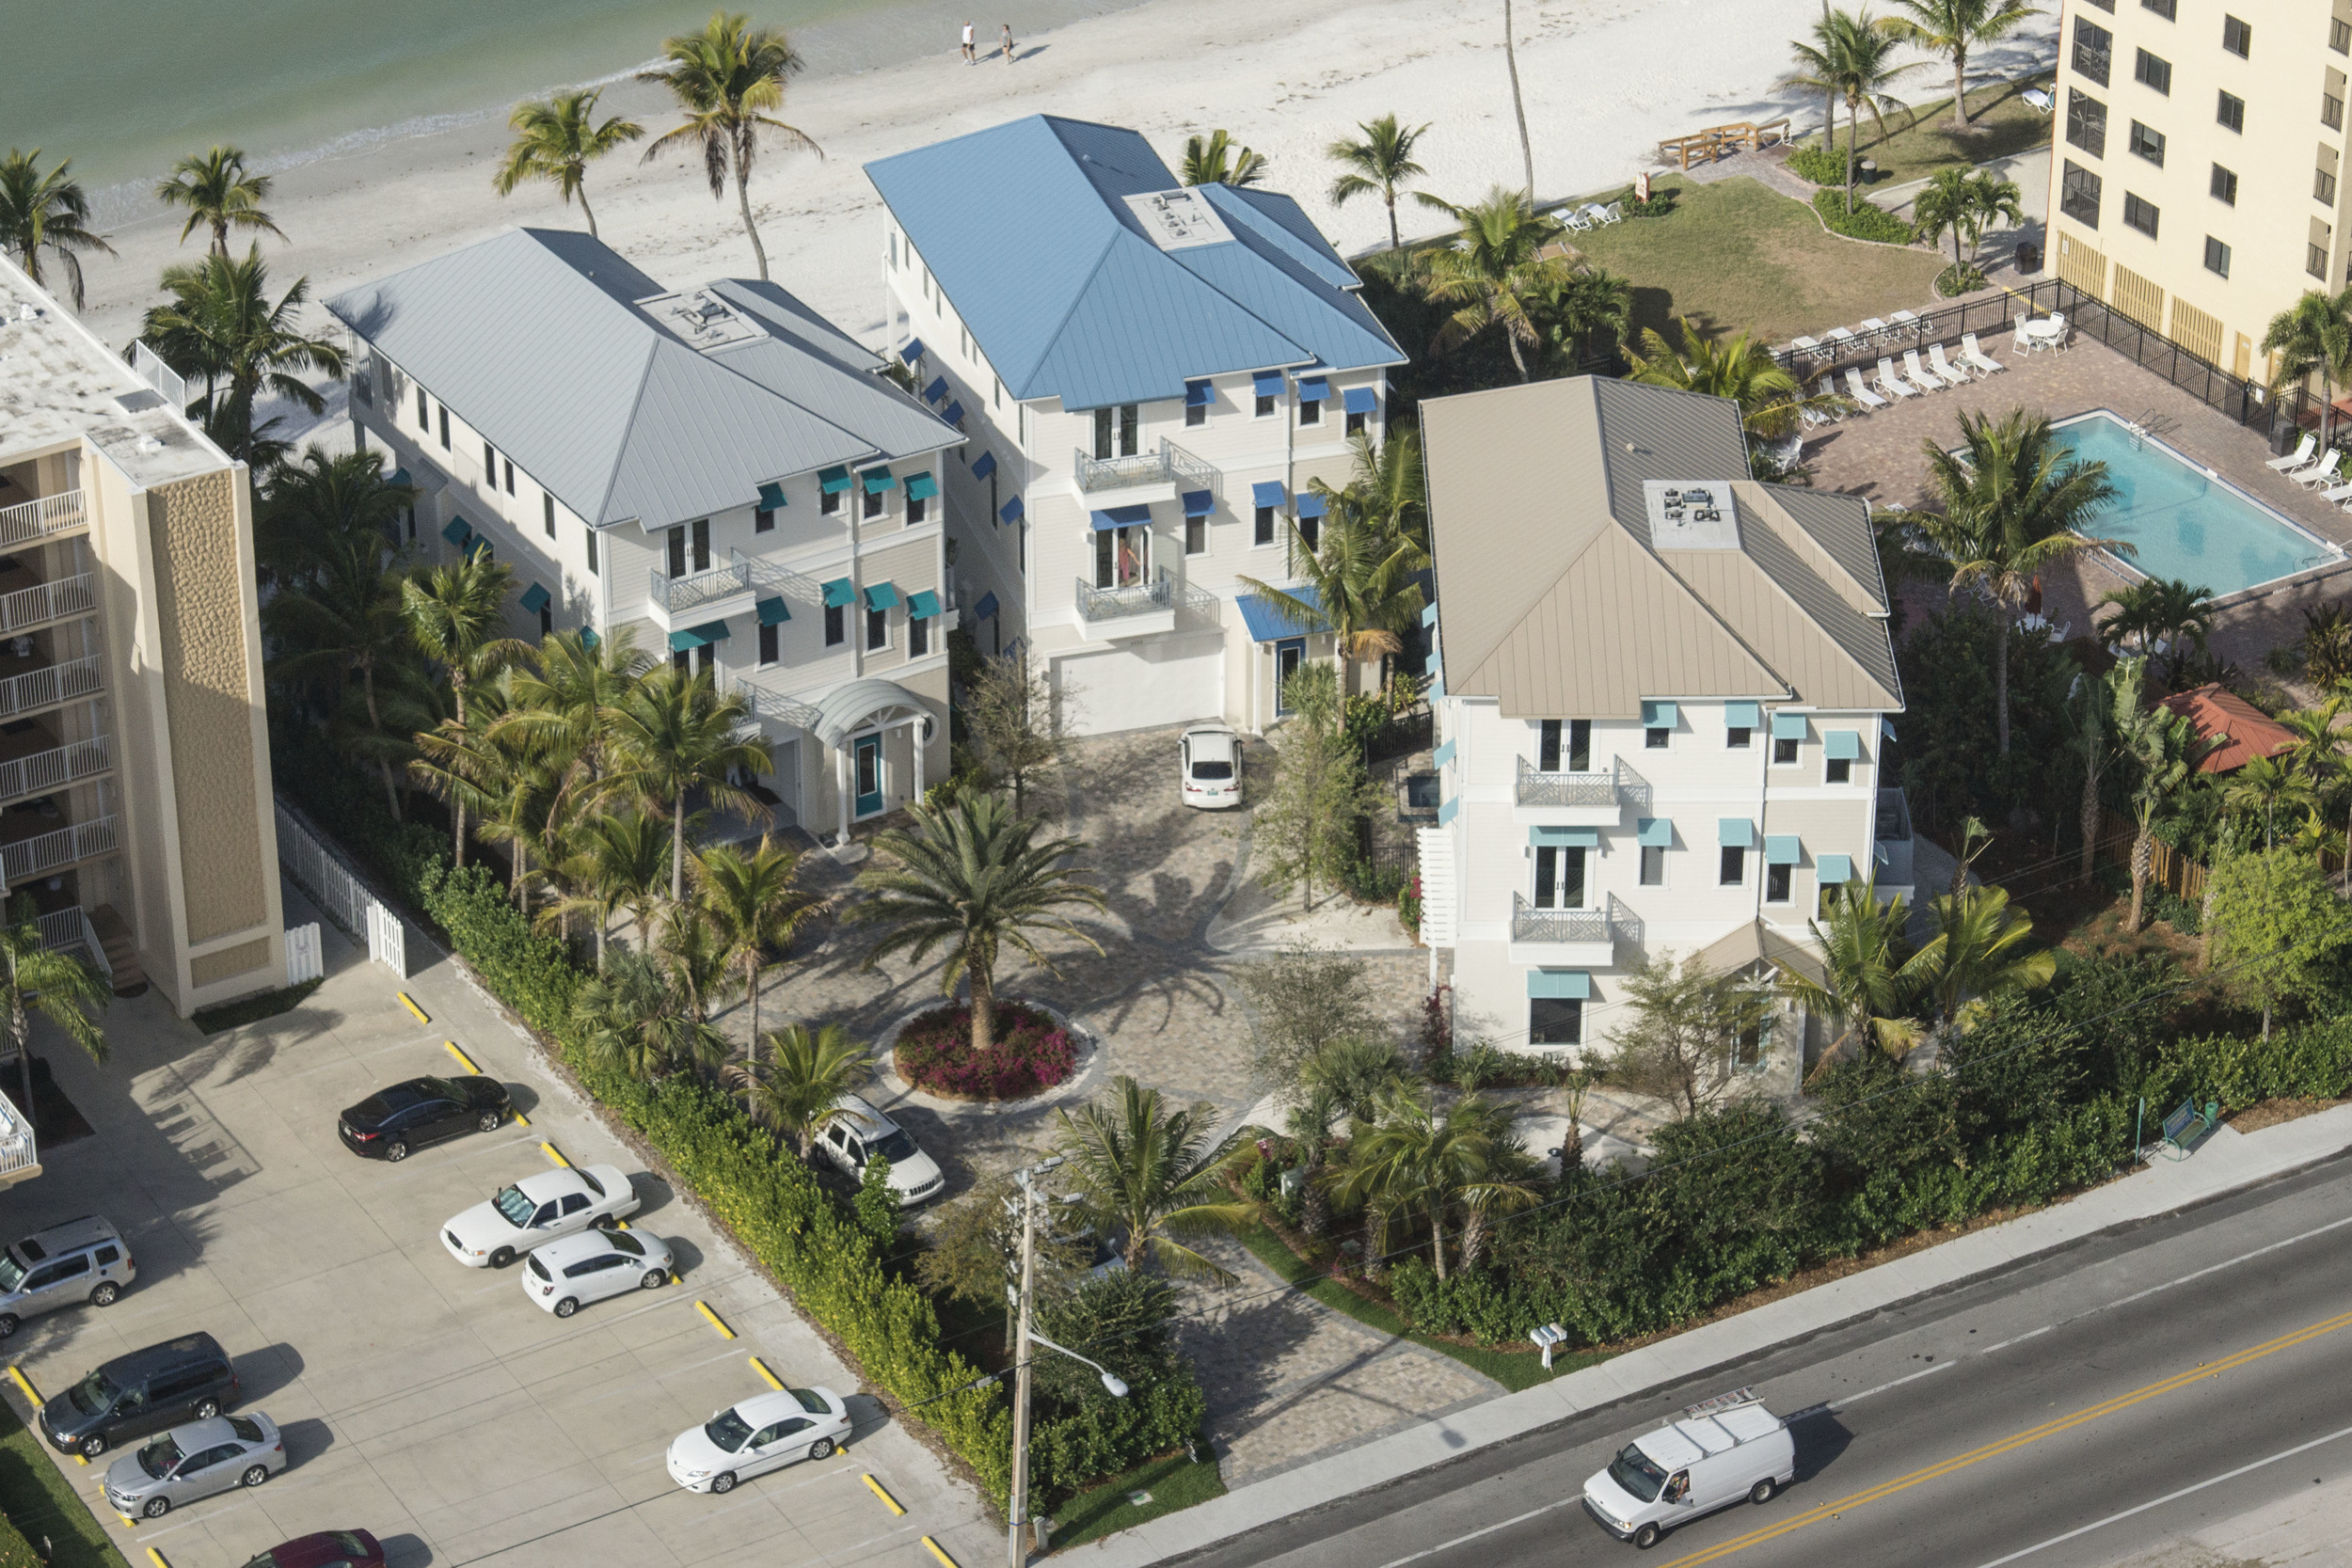 4850 Estero Blvd, Ft. Myers Beach